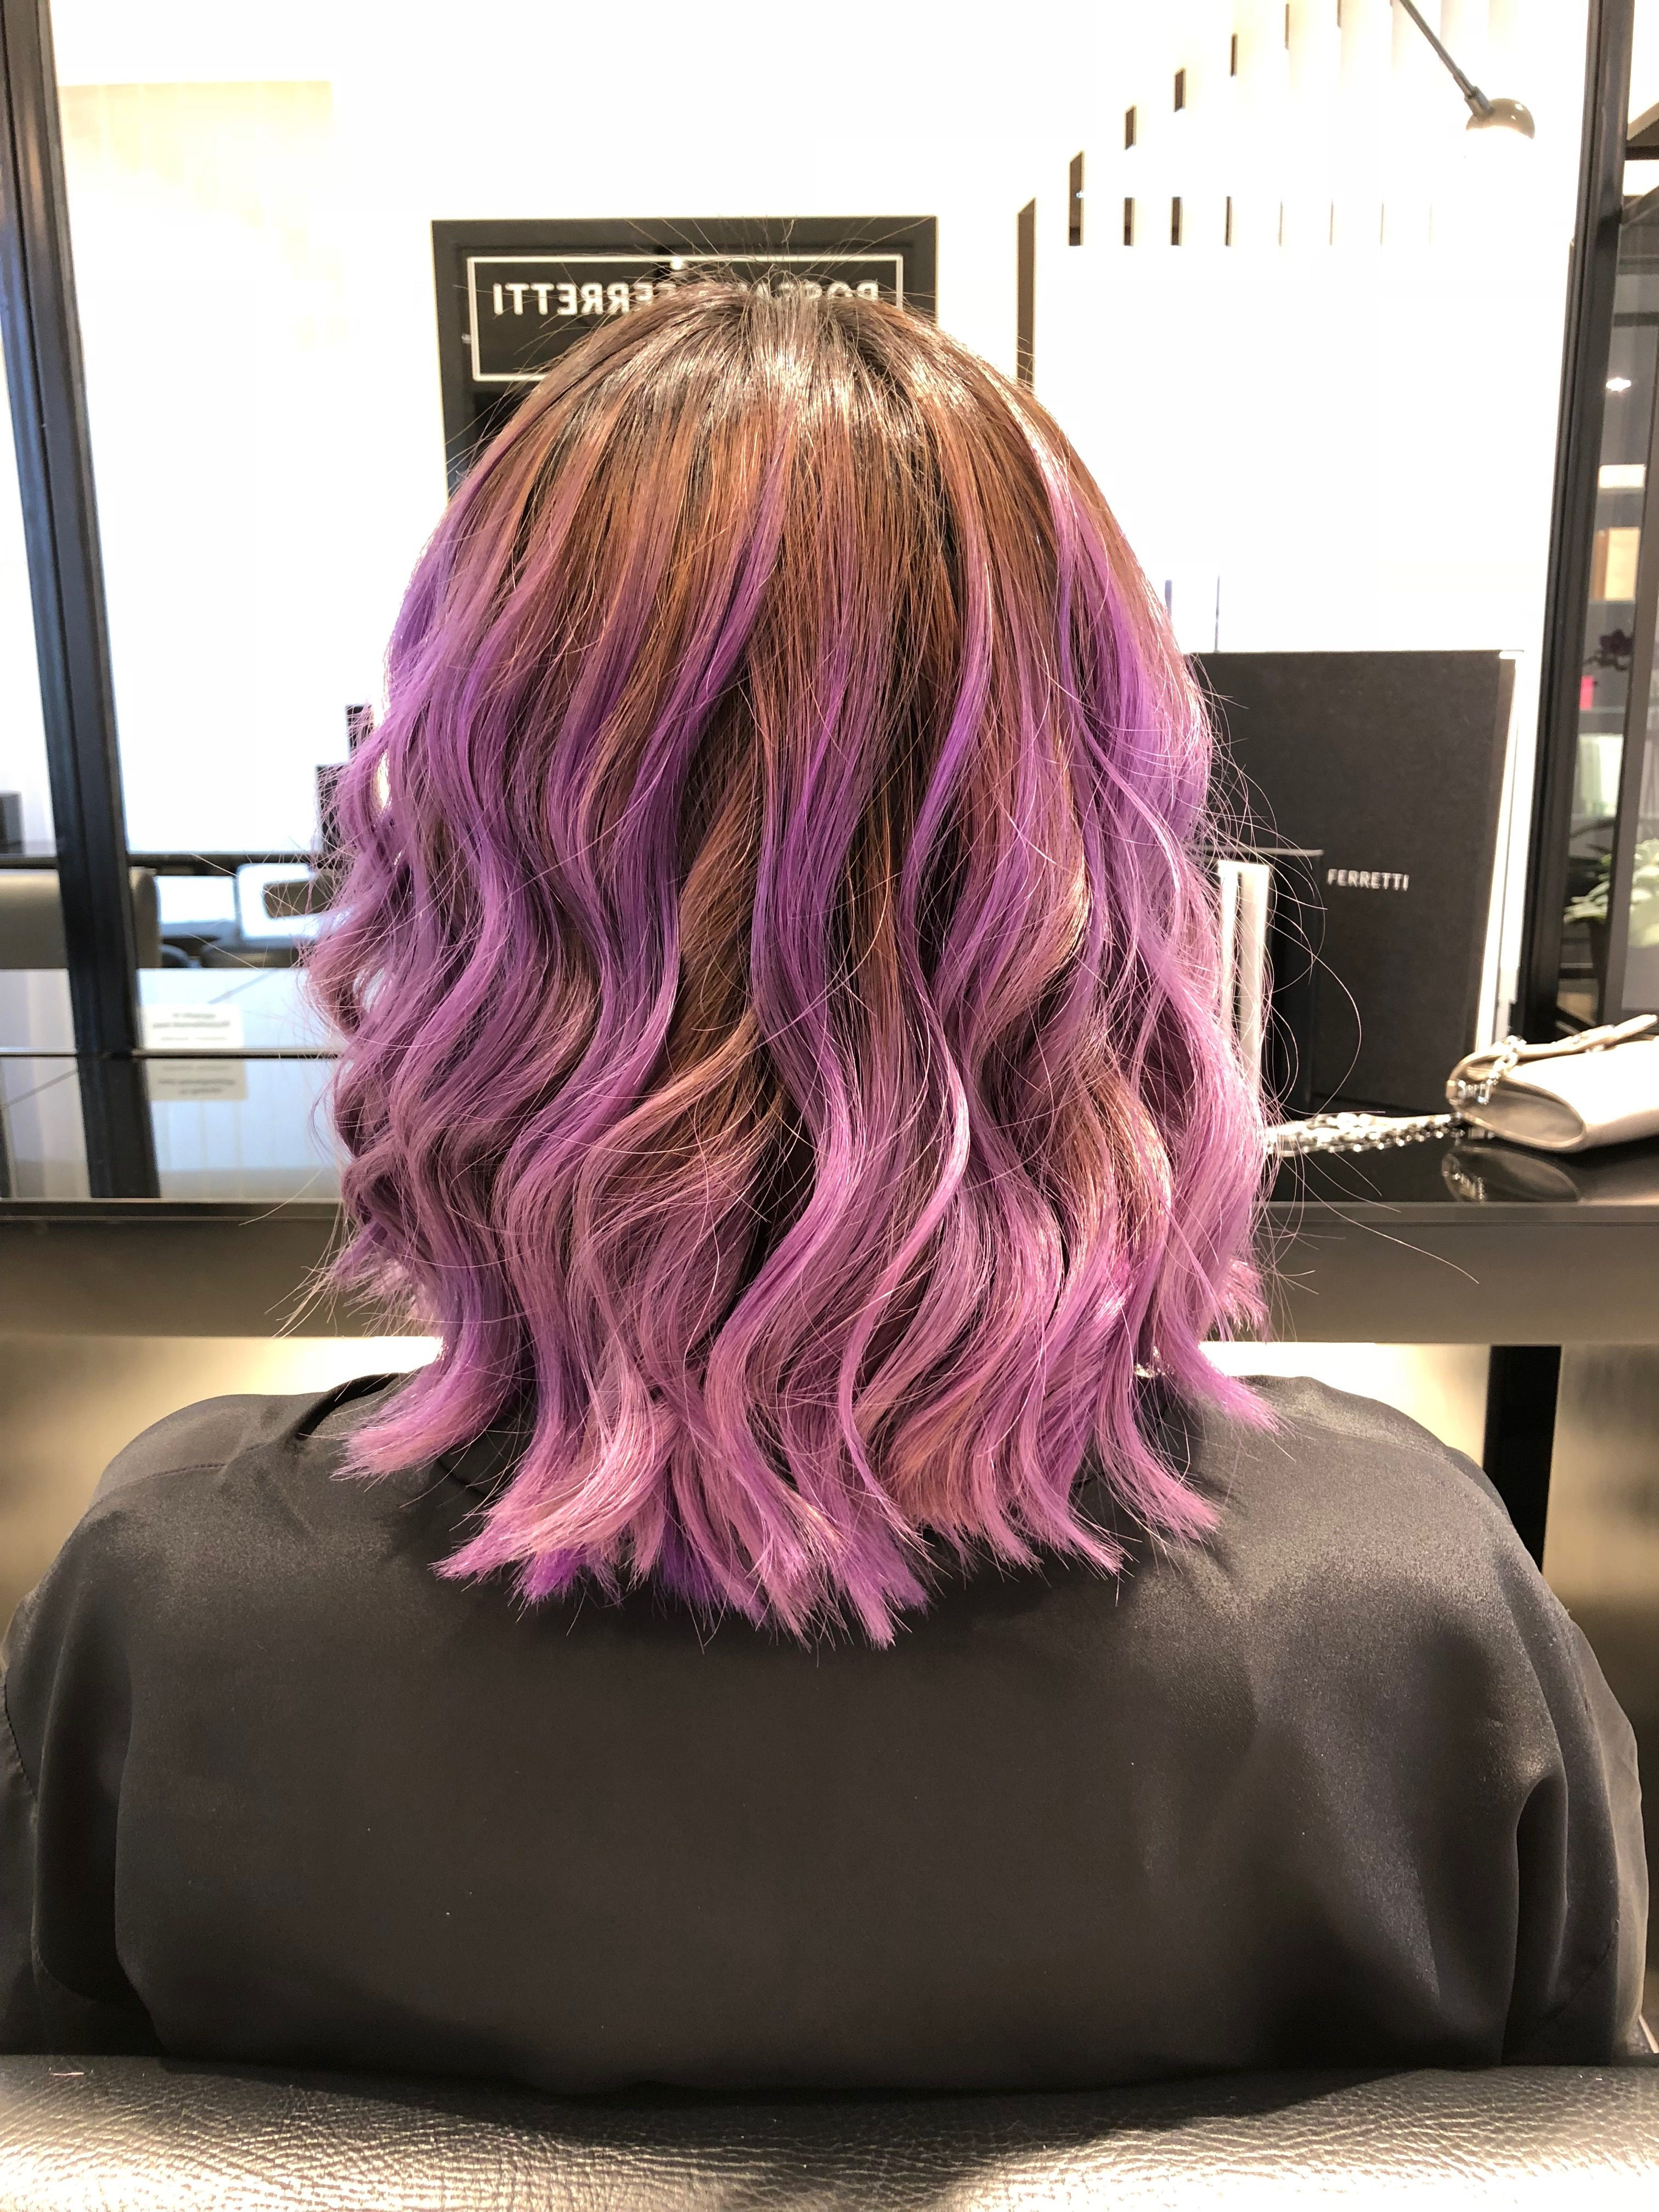 How To Take Care Of Colored Hair Rossano Ferretti Hair Spa Dot